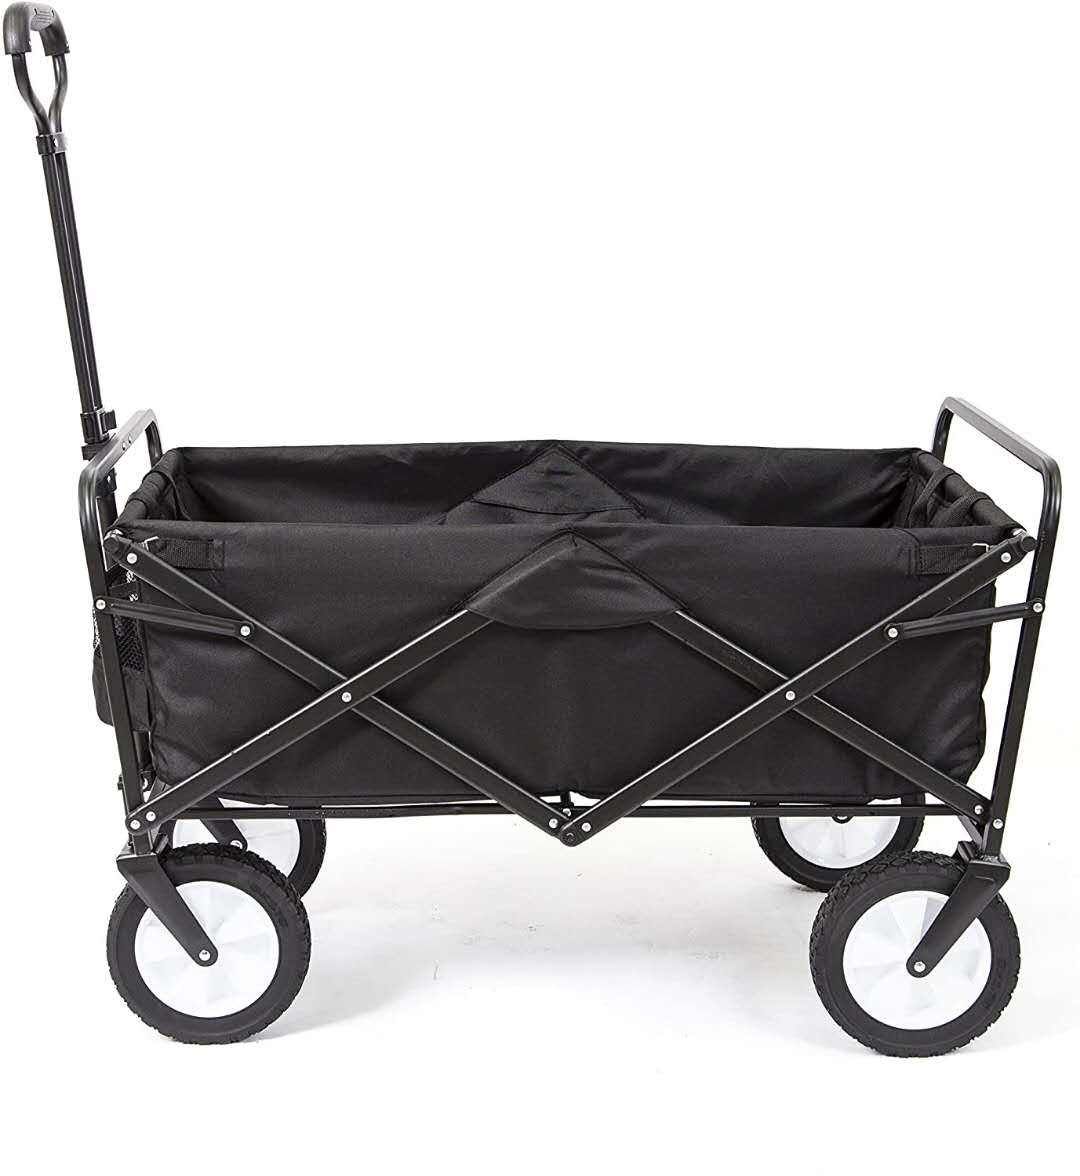 In Stock.Outdoor foldable wagon 4 Wheels Collapsible Utility Cart Portable Storage Basket Garden Beach Trolley